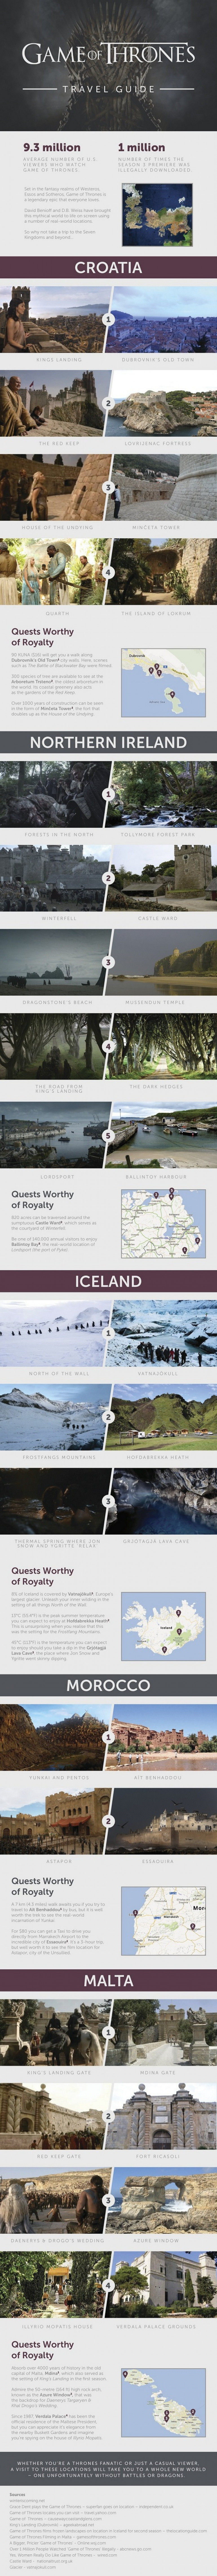 Game of Thrones Travel Guide Infographic